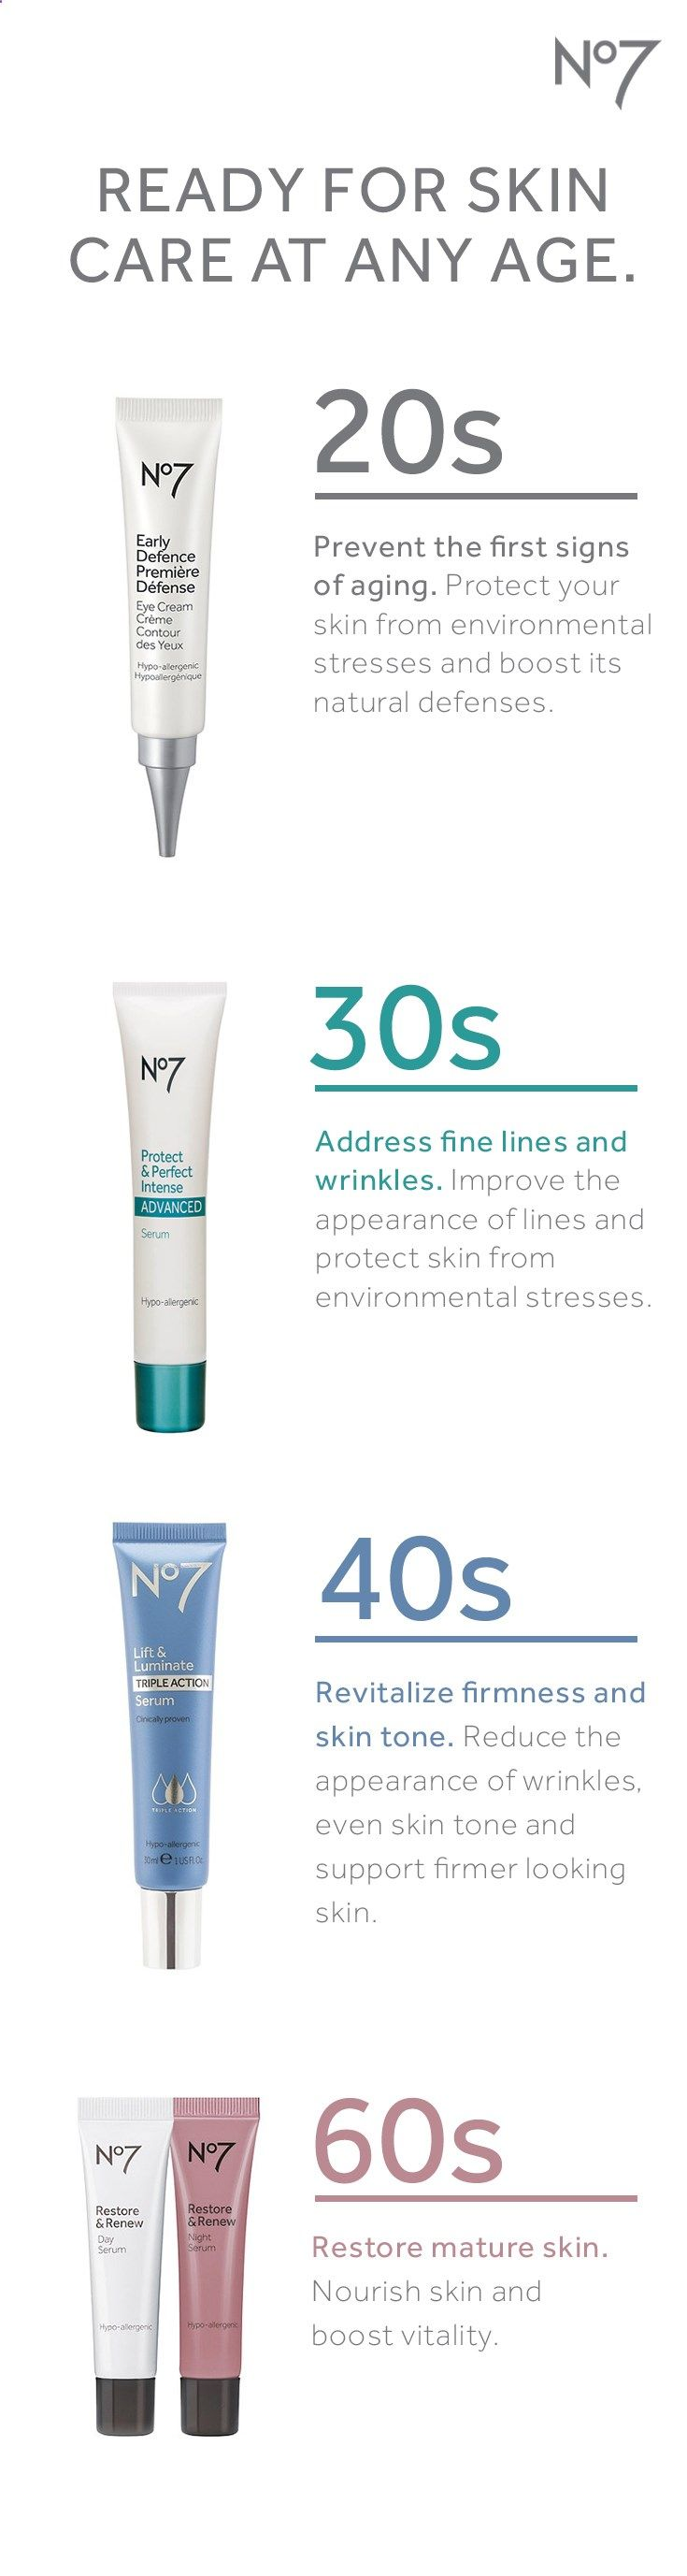 Your skincare at any age. Read to find out the best ways to care for your skin in your 20s, 30s, 40s and 50s.